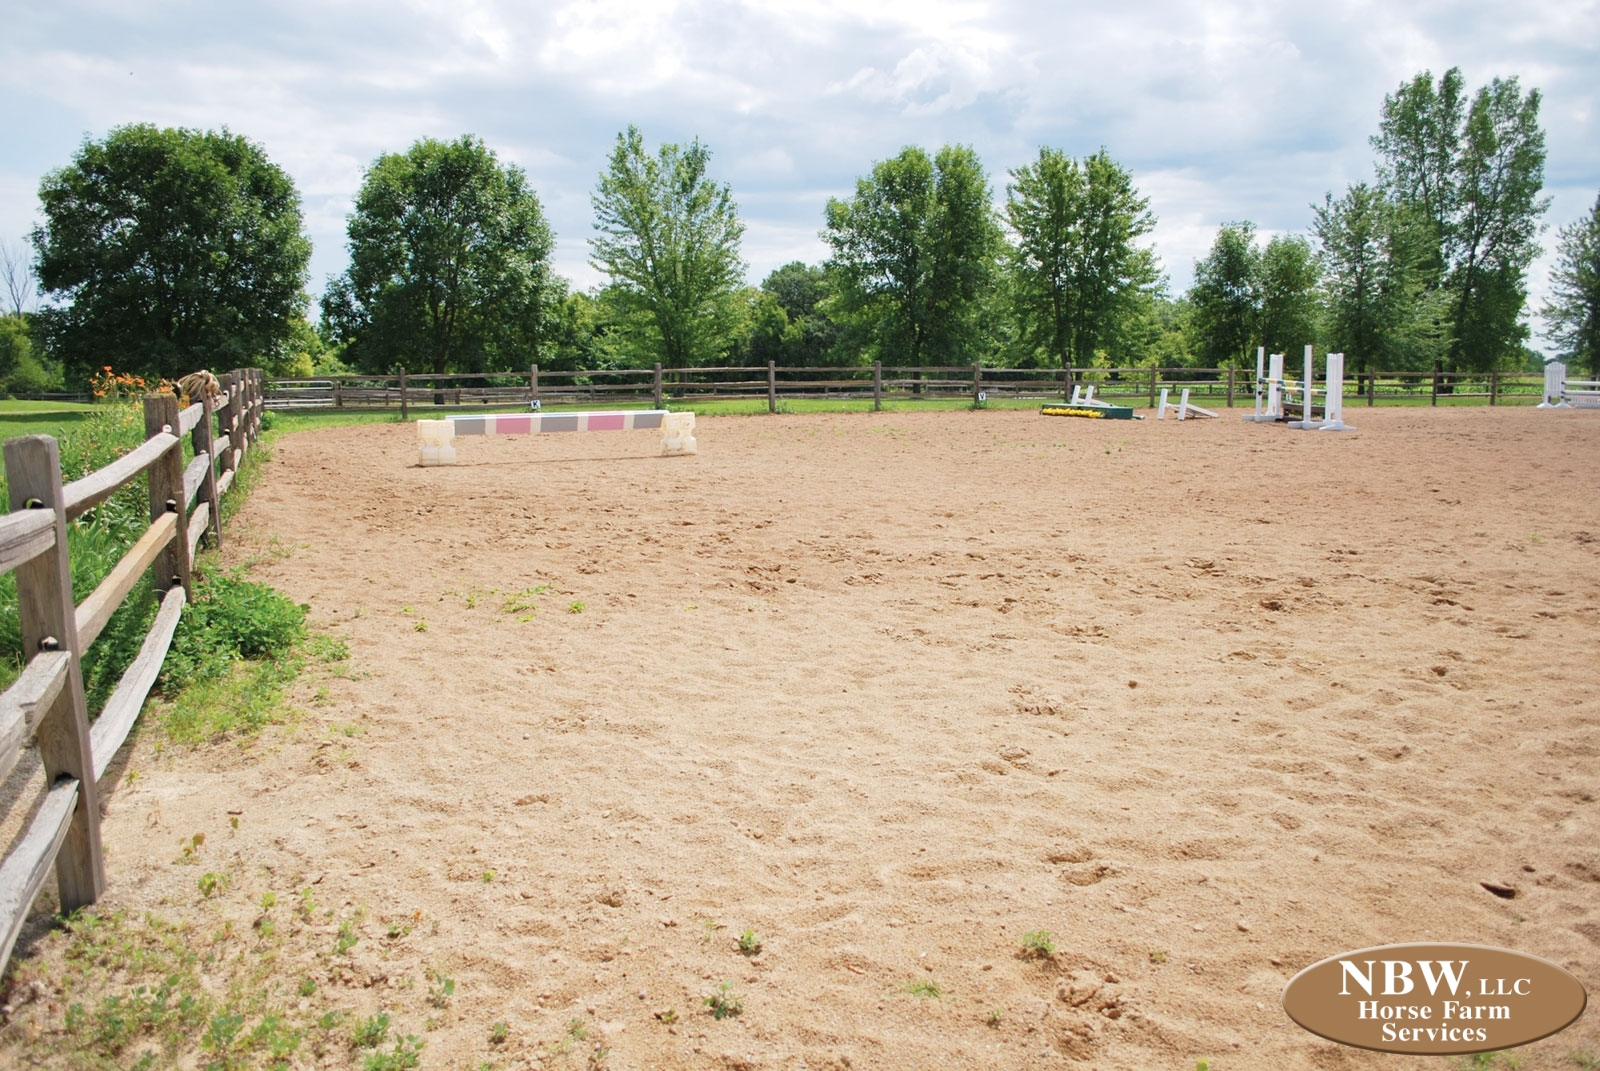 Arena Construction & Footings – Horse Farm Services